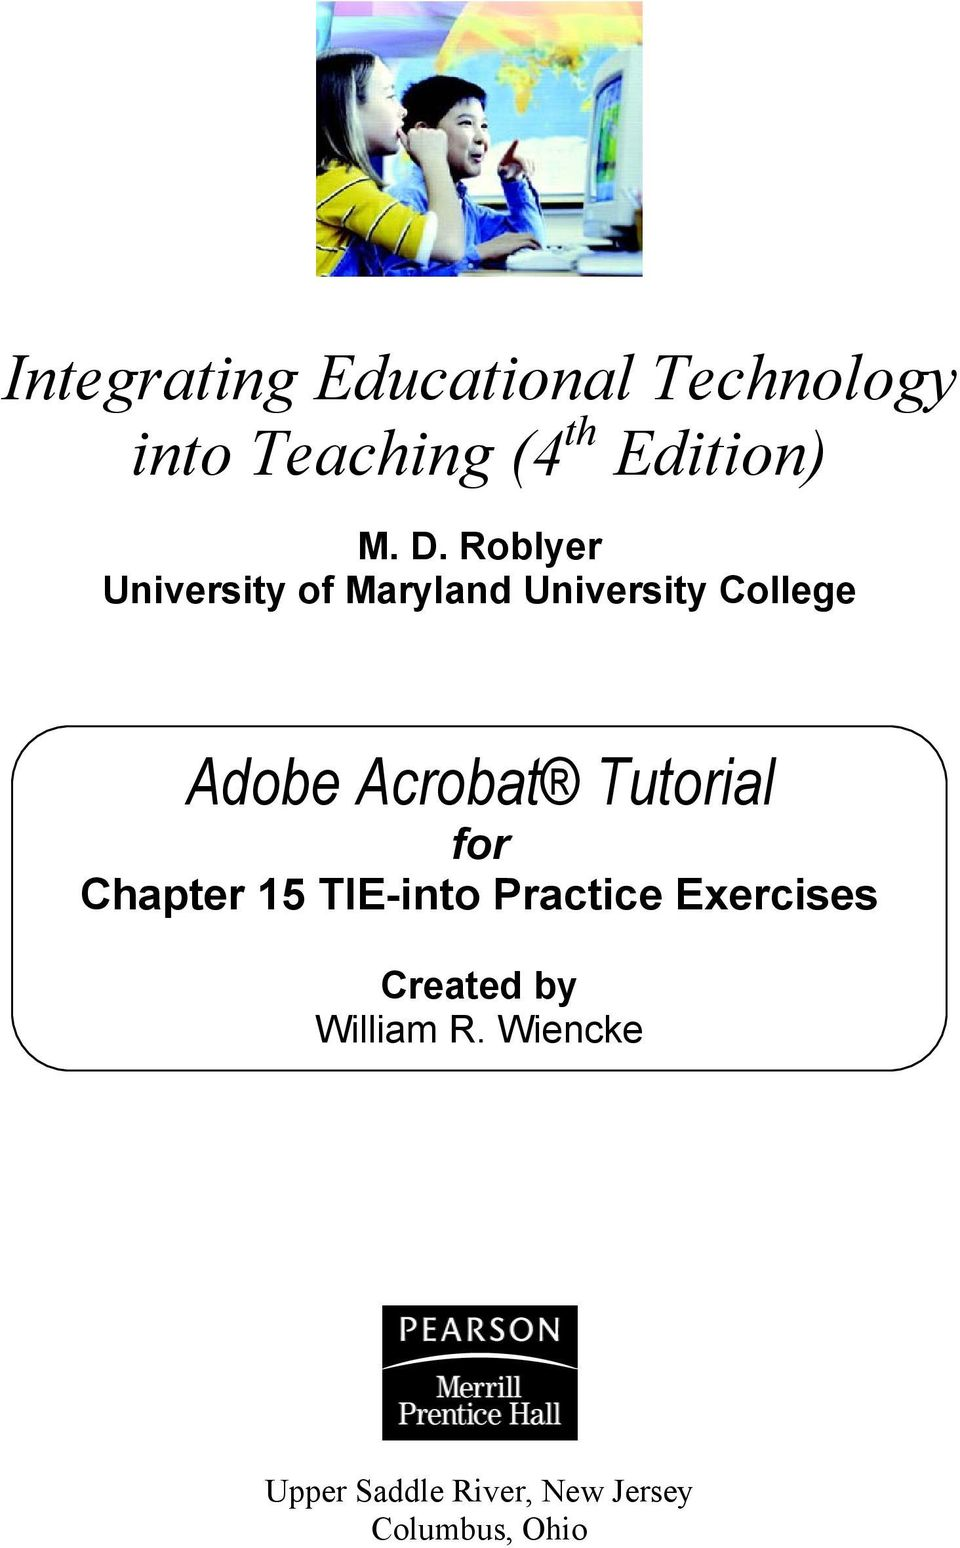 Acrobat Tutorial for Chapter 15 TIE-into Practice Exercises